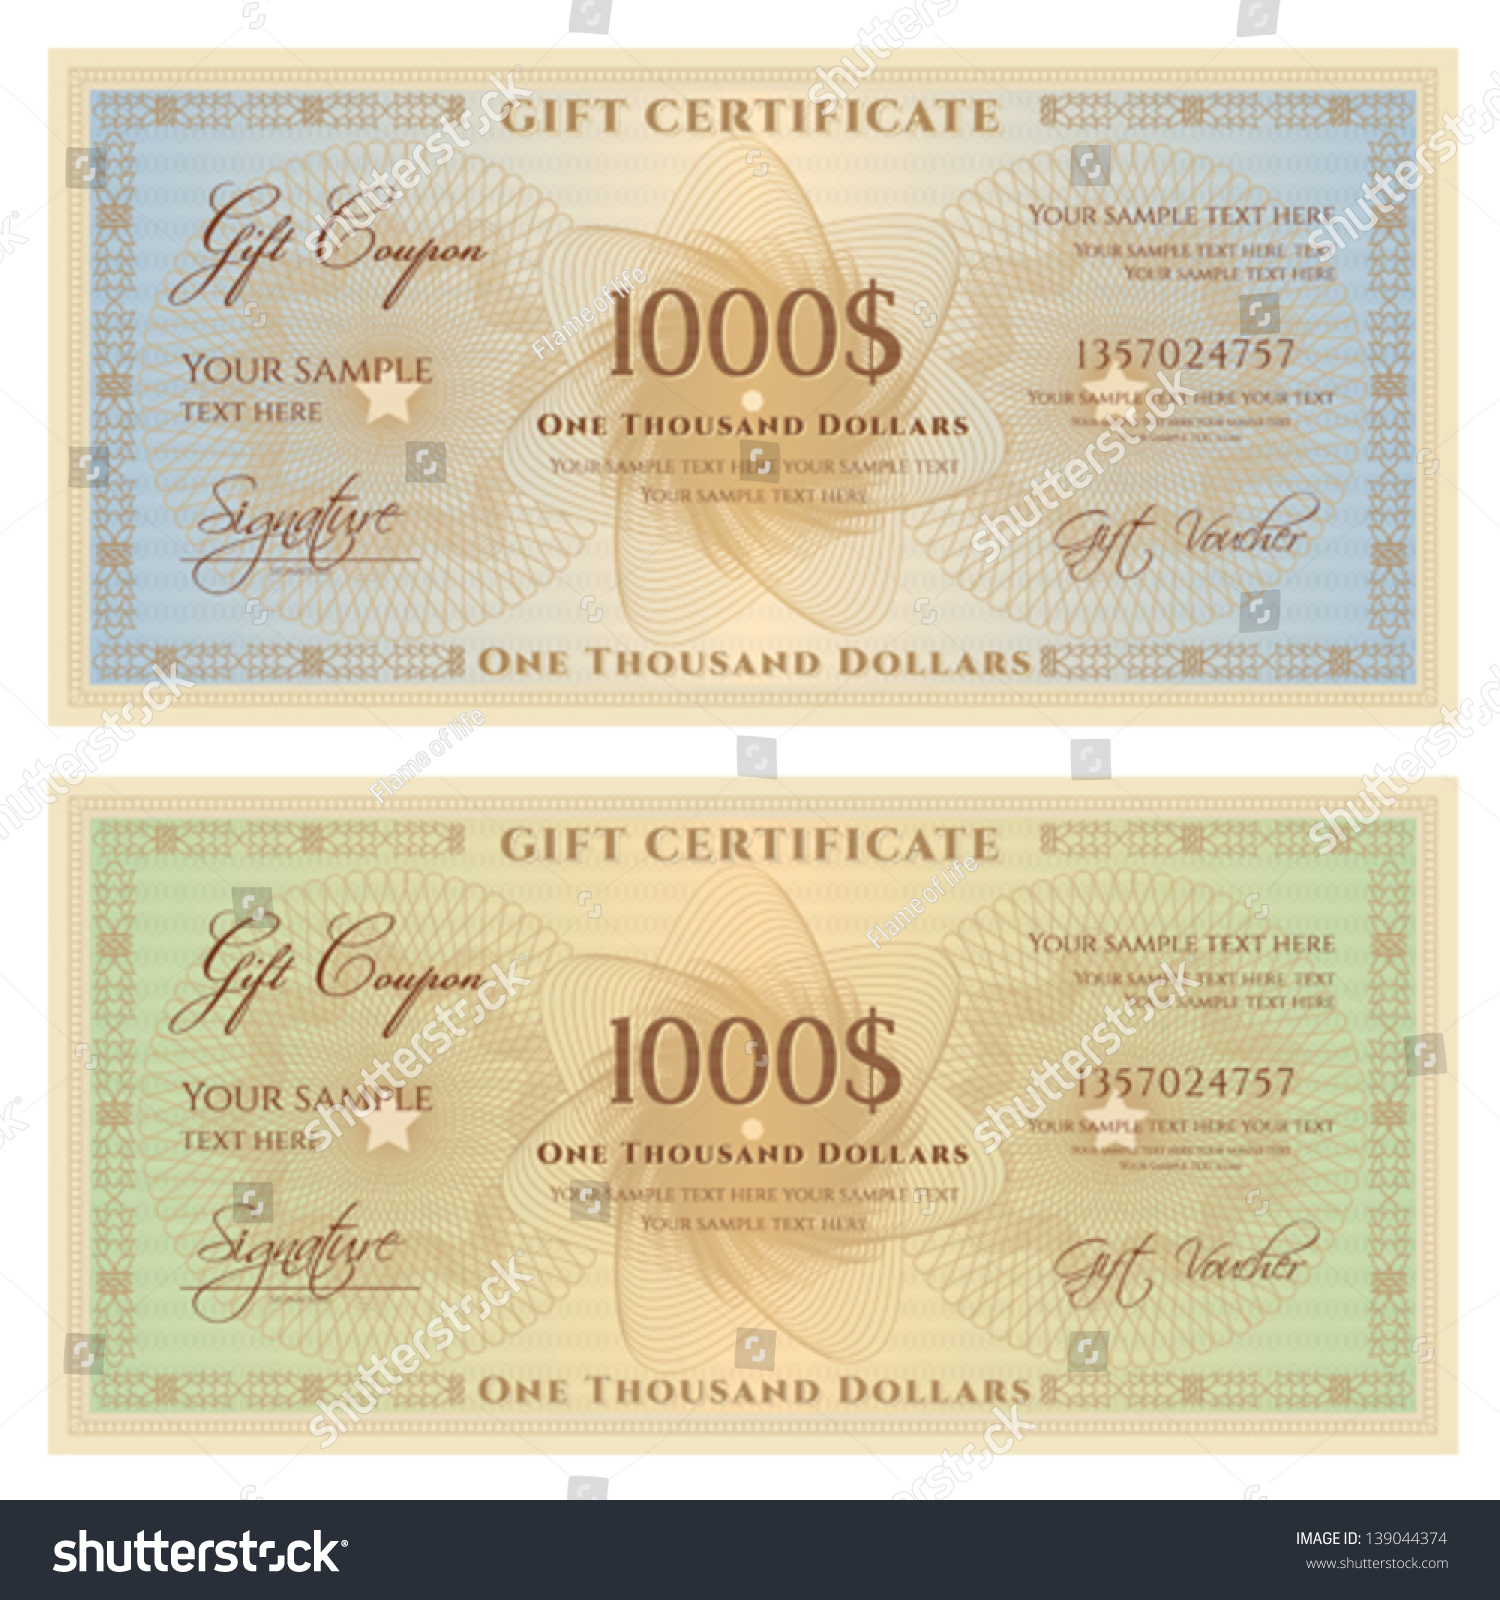 Superior Royalty Free Gift Certificate Voucher Templateu2026 139044374 Stock Avopix  139044374 139044374 Shutterstock Gift Certificate Voucher Template Money  Voucher ... Intended For Money Voucher Template